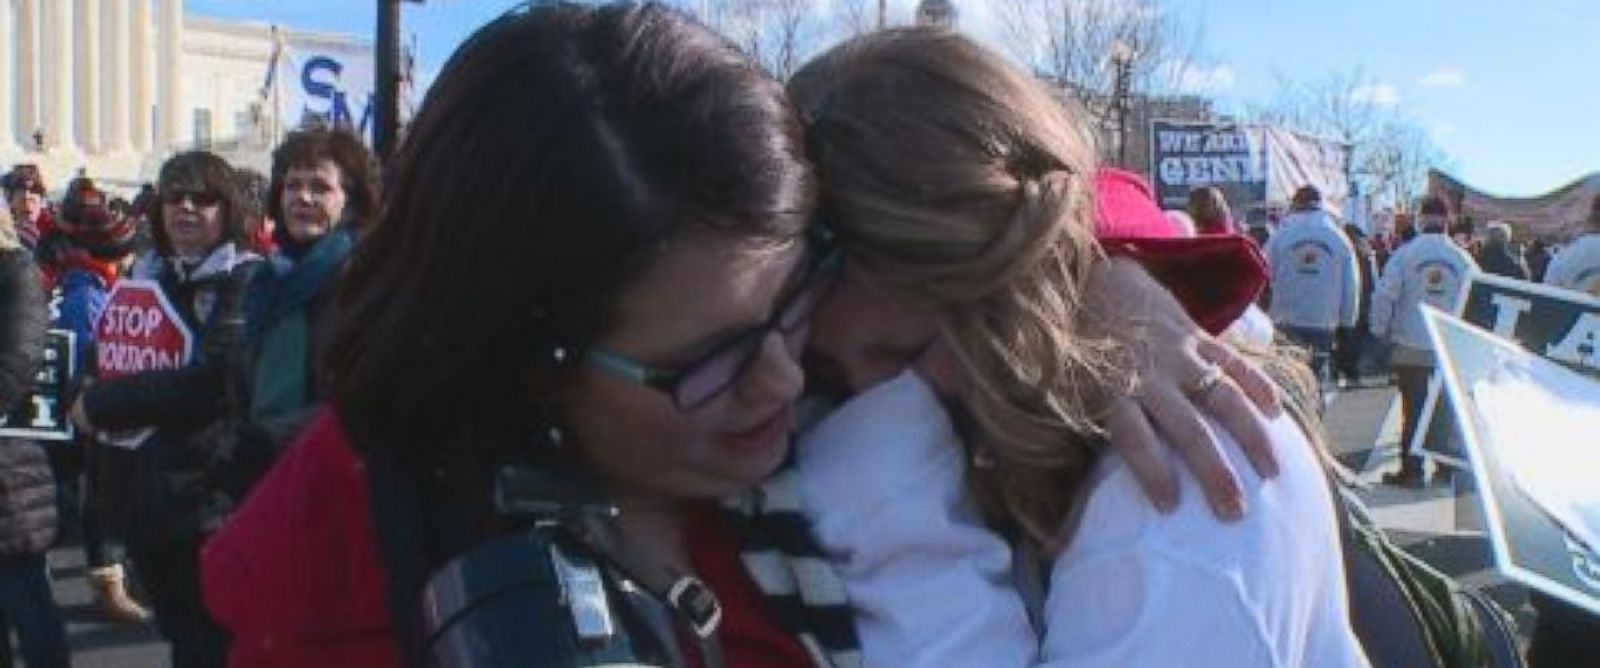 Kristan Hawkins is shown here hugging Devin Veers at a March For Life event in Washington, D.C.